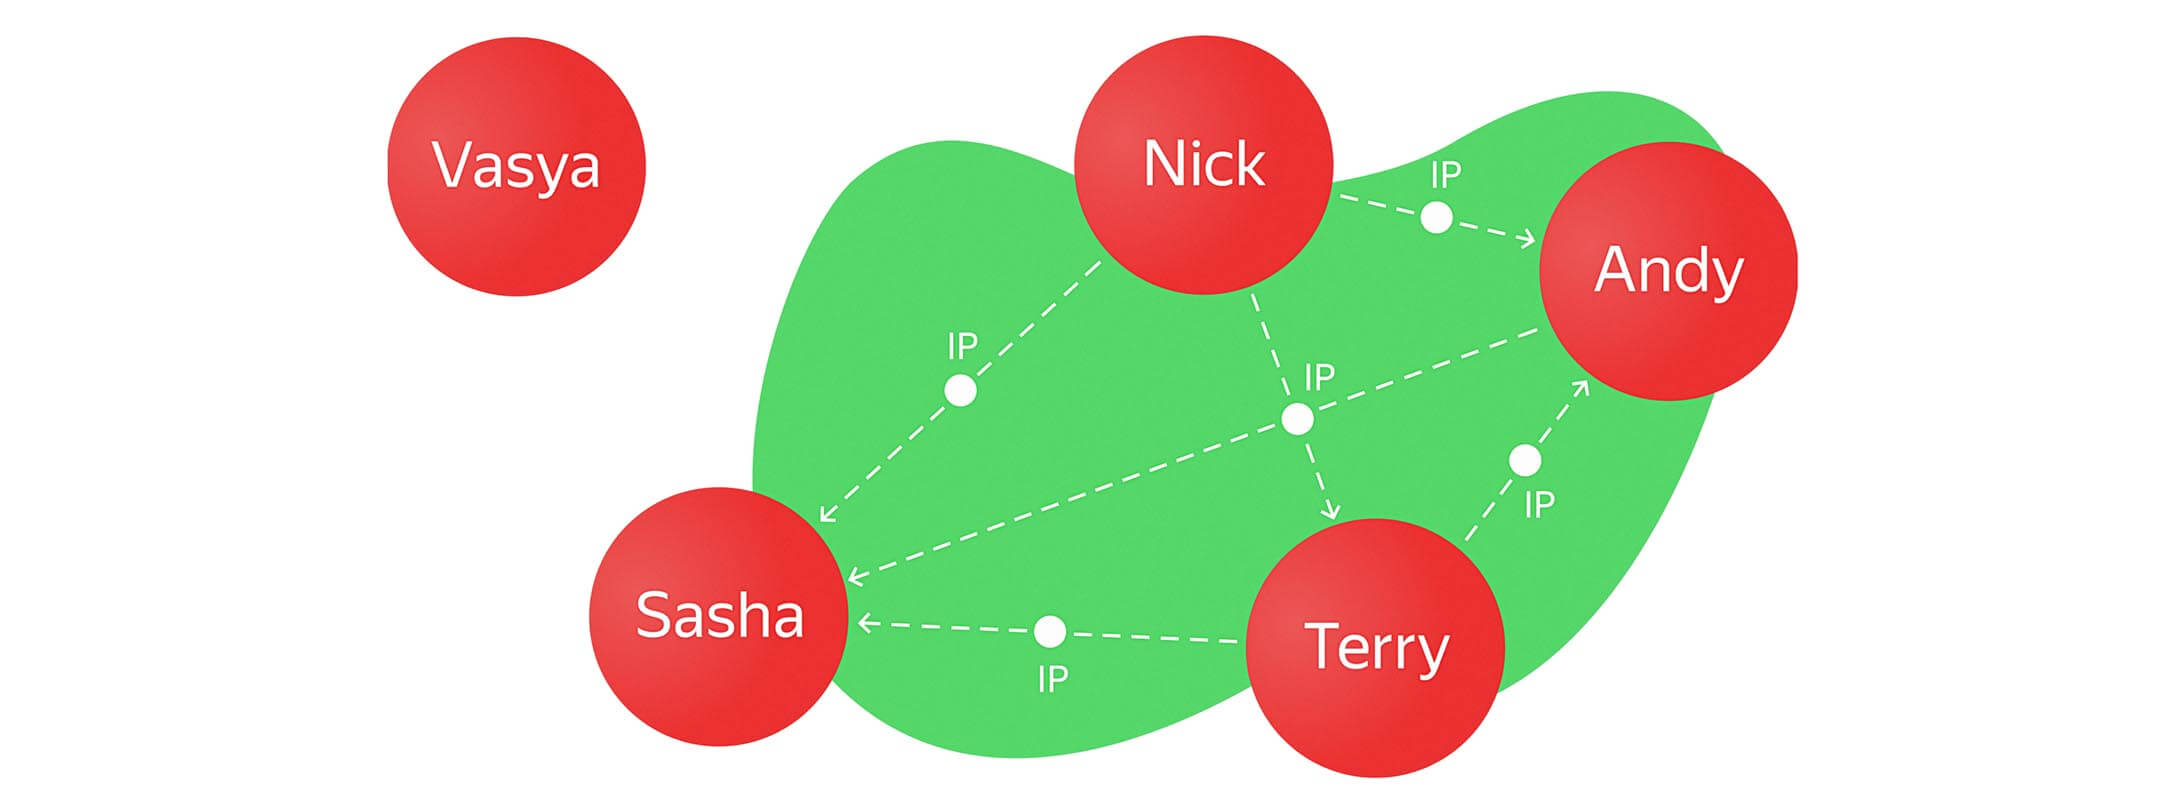 simple-user-graph-neo4j.jpg